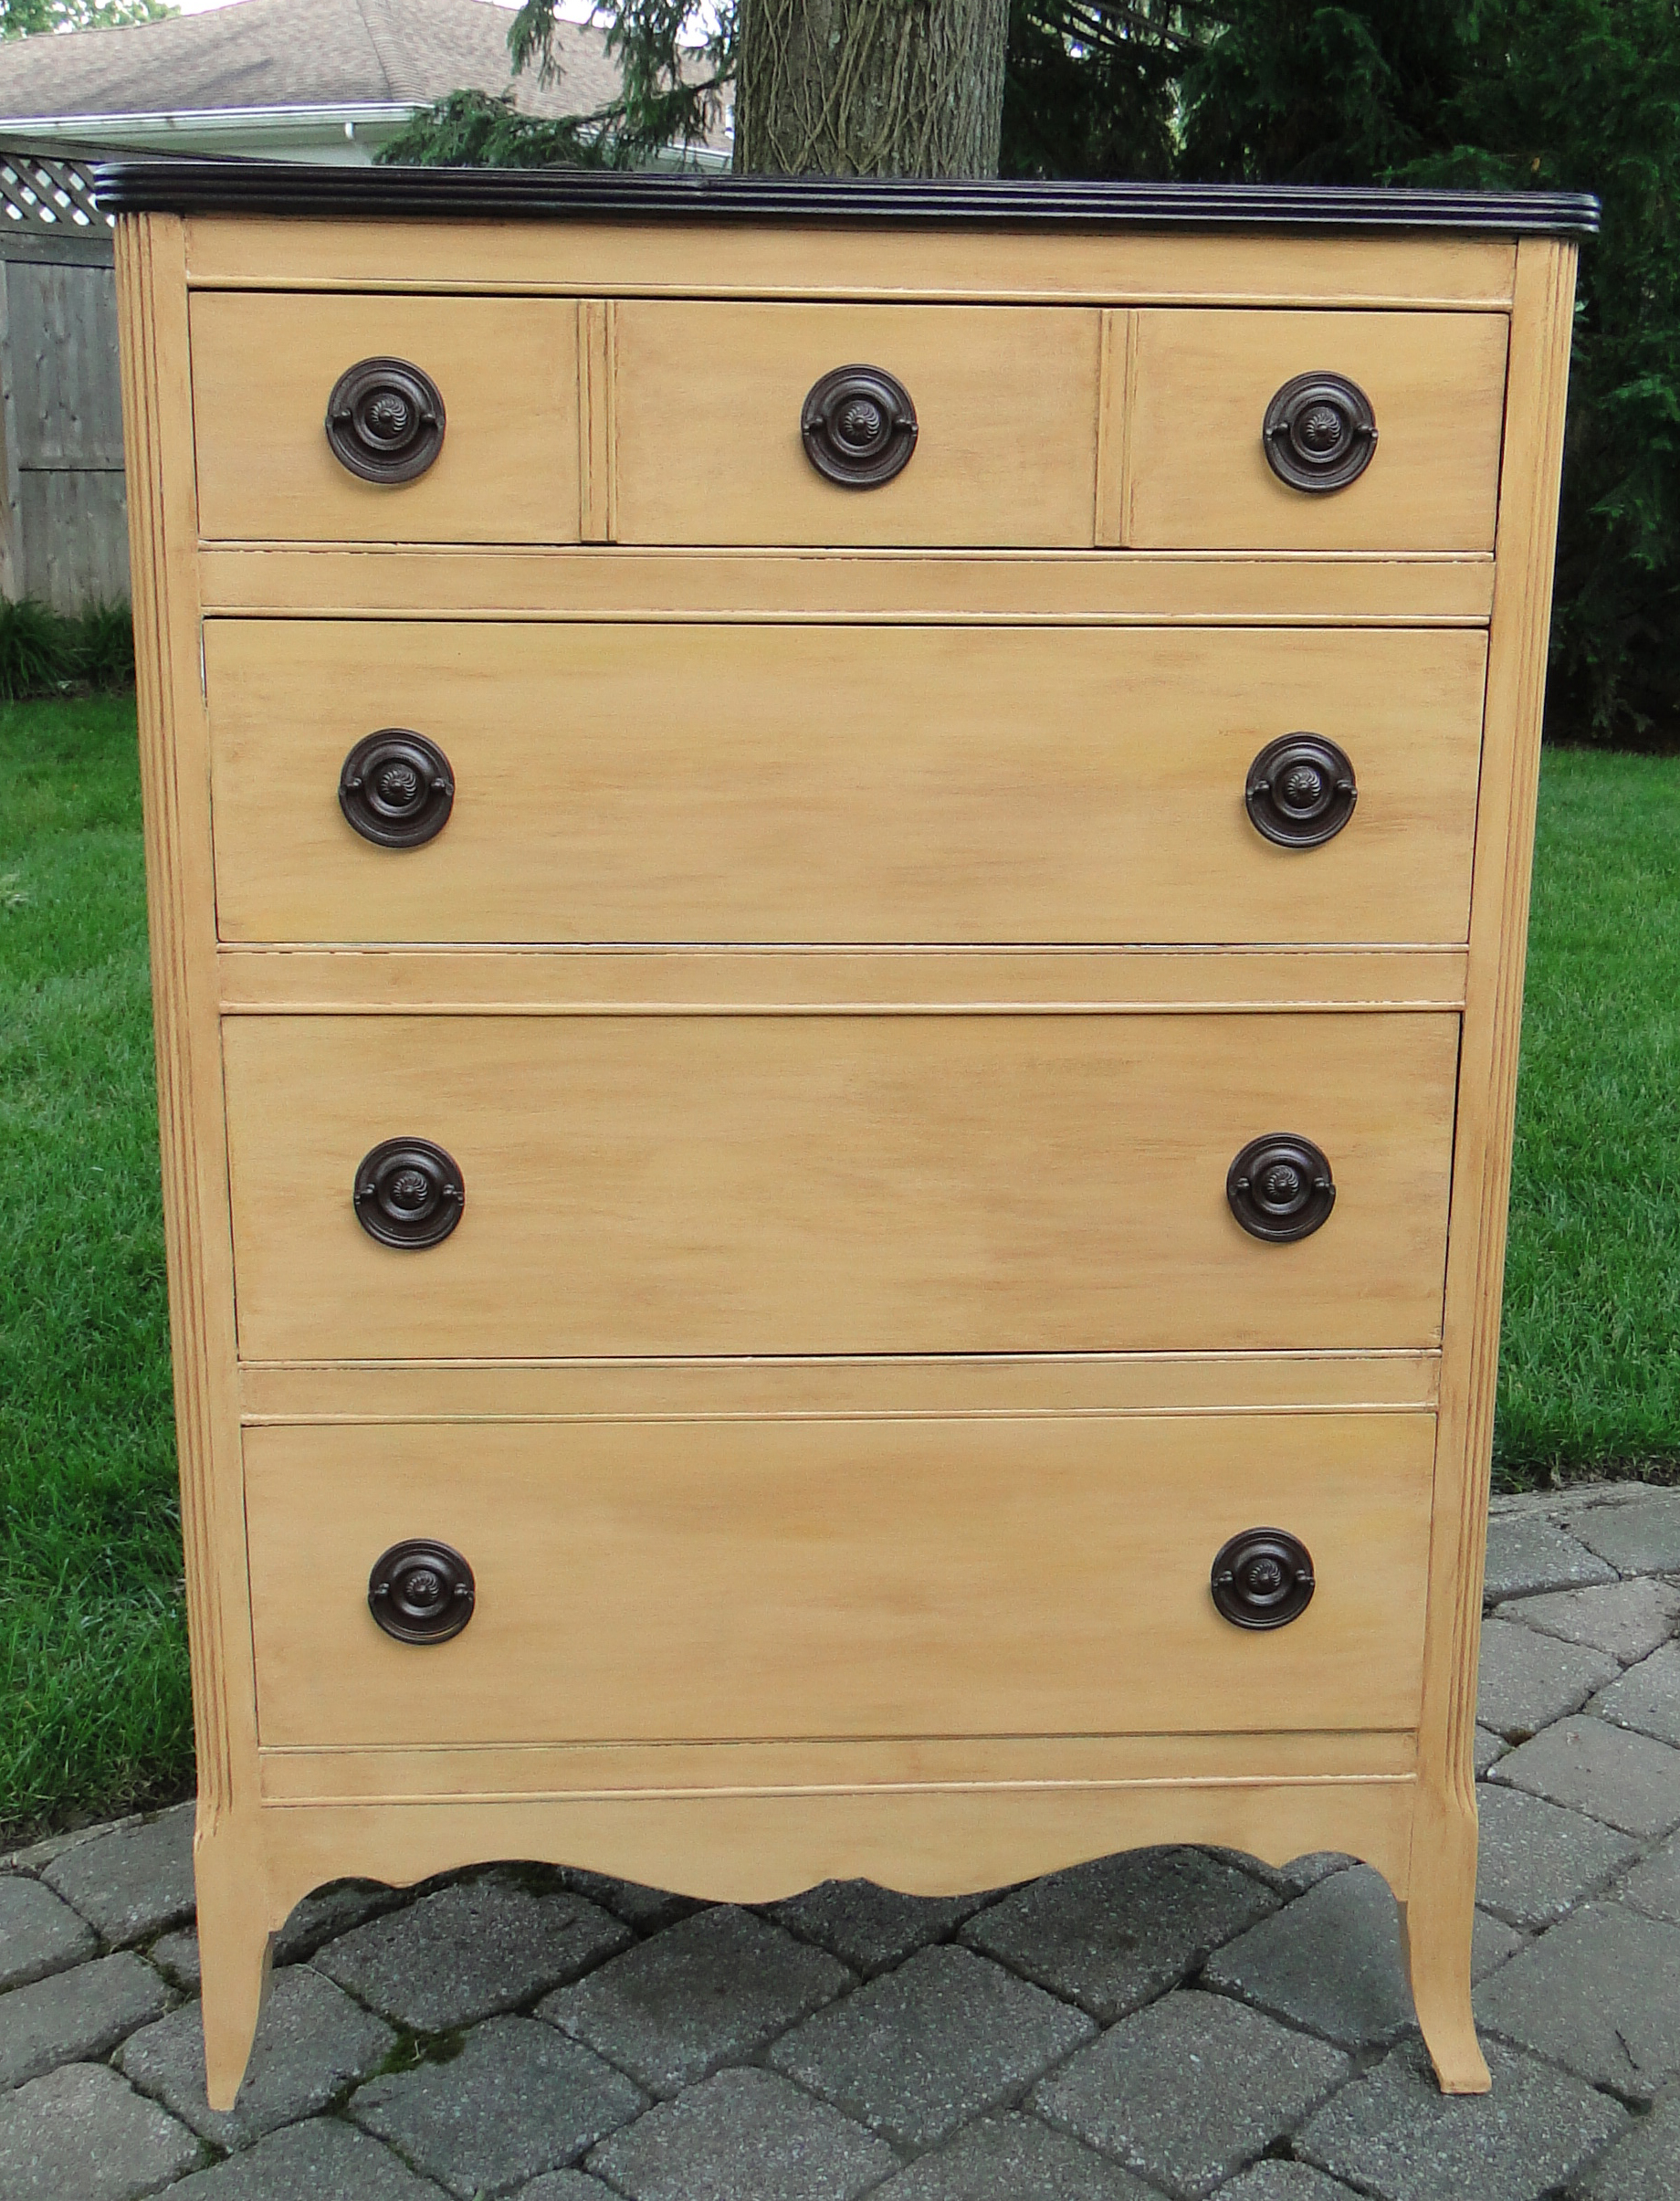 Full front view of dresser